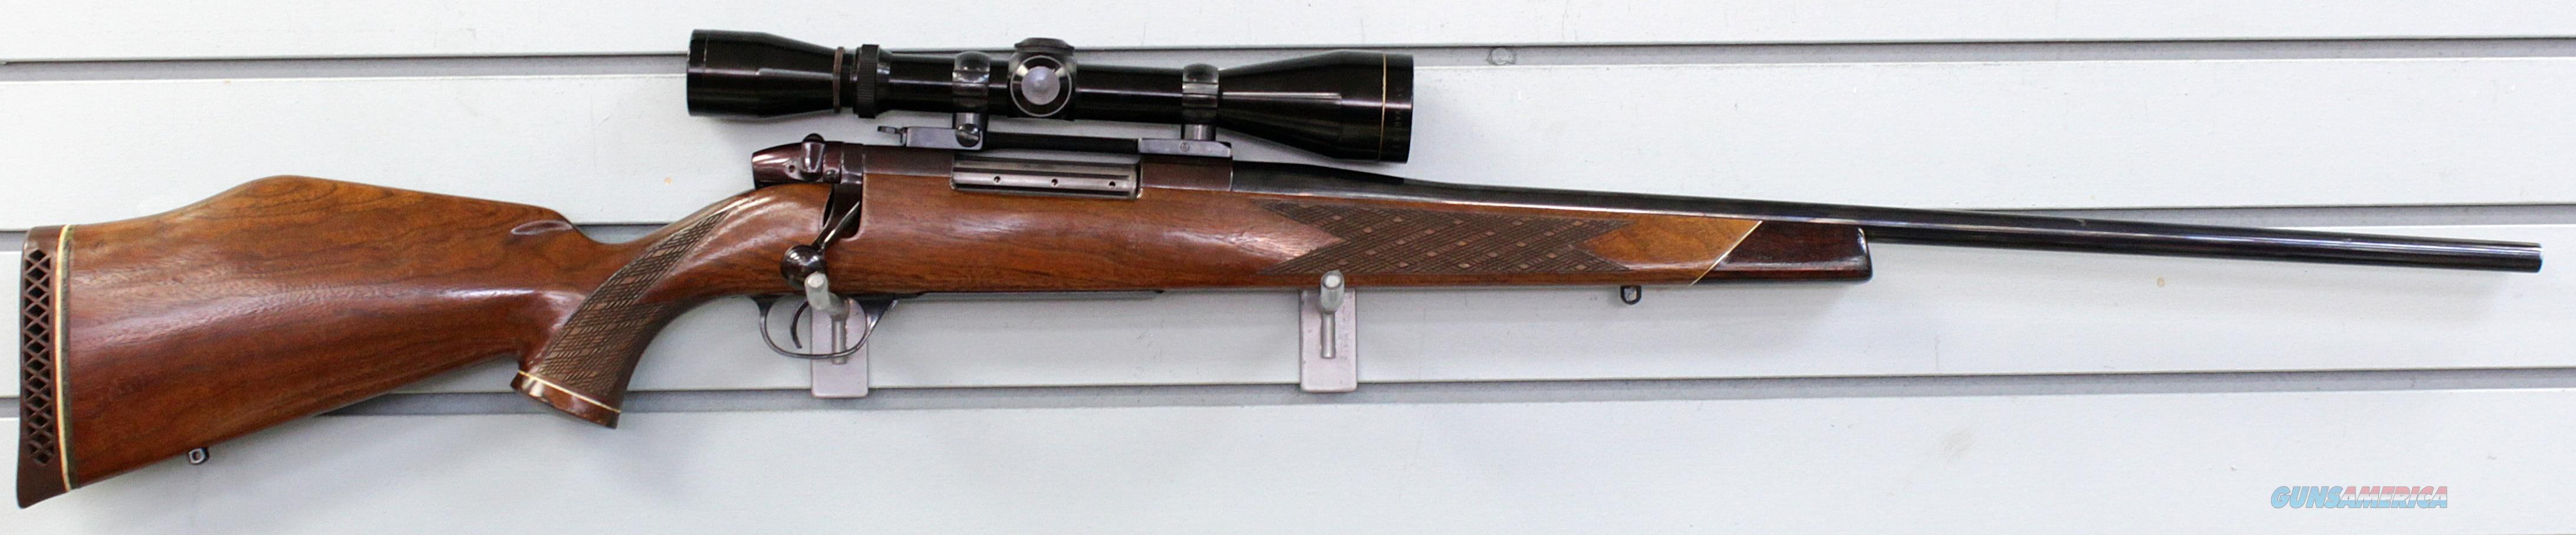 WEATHERBY MARK V 300 WBYMAG  Guns > Rifles > Weatherby Rifles > Sporting